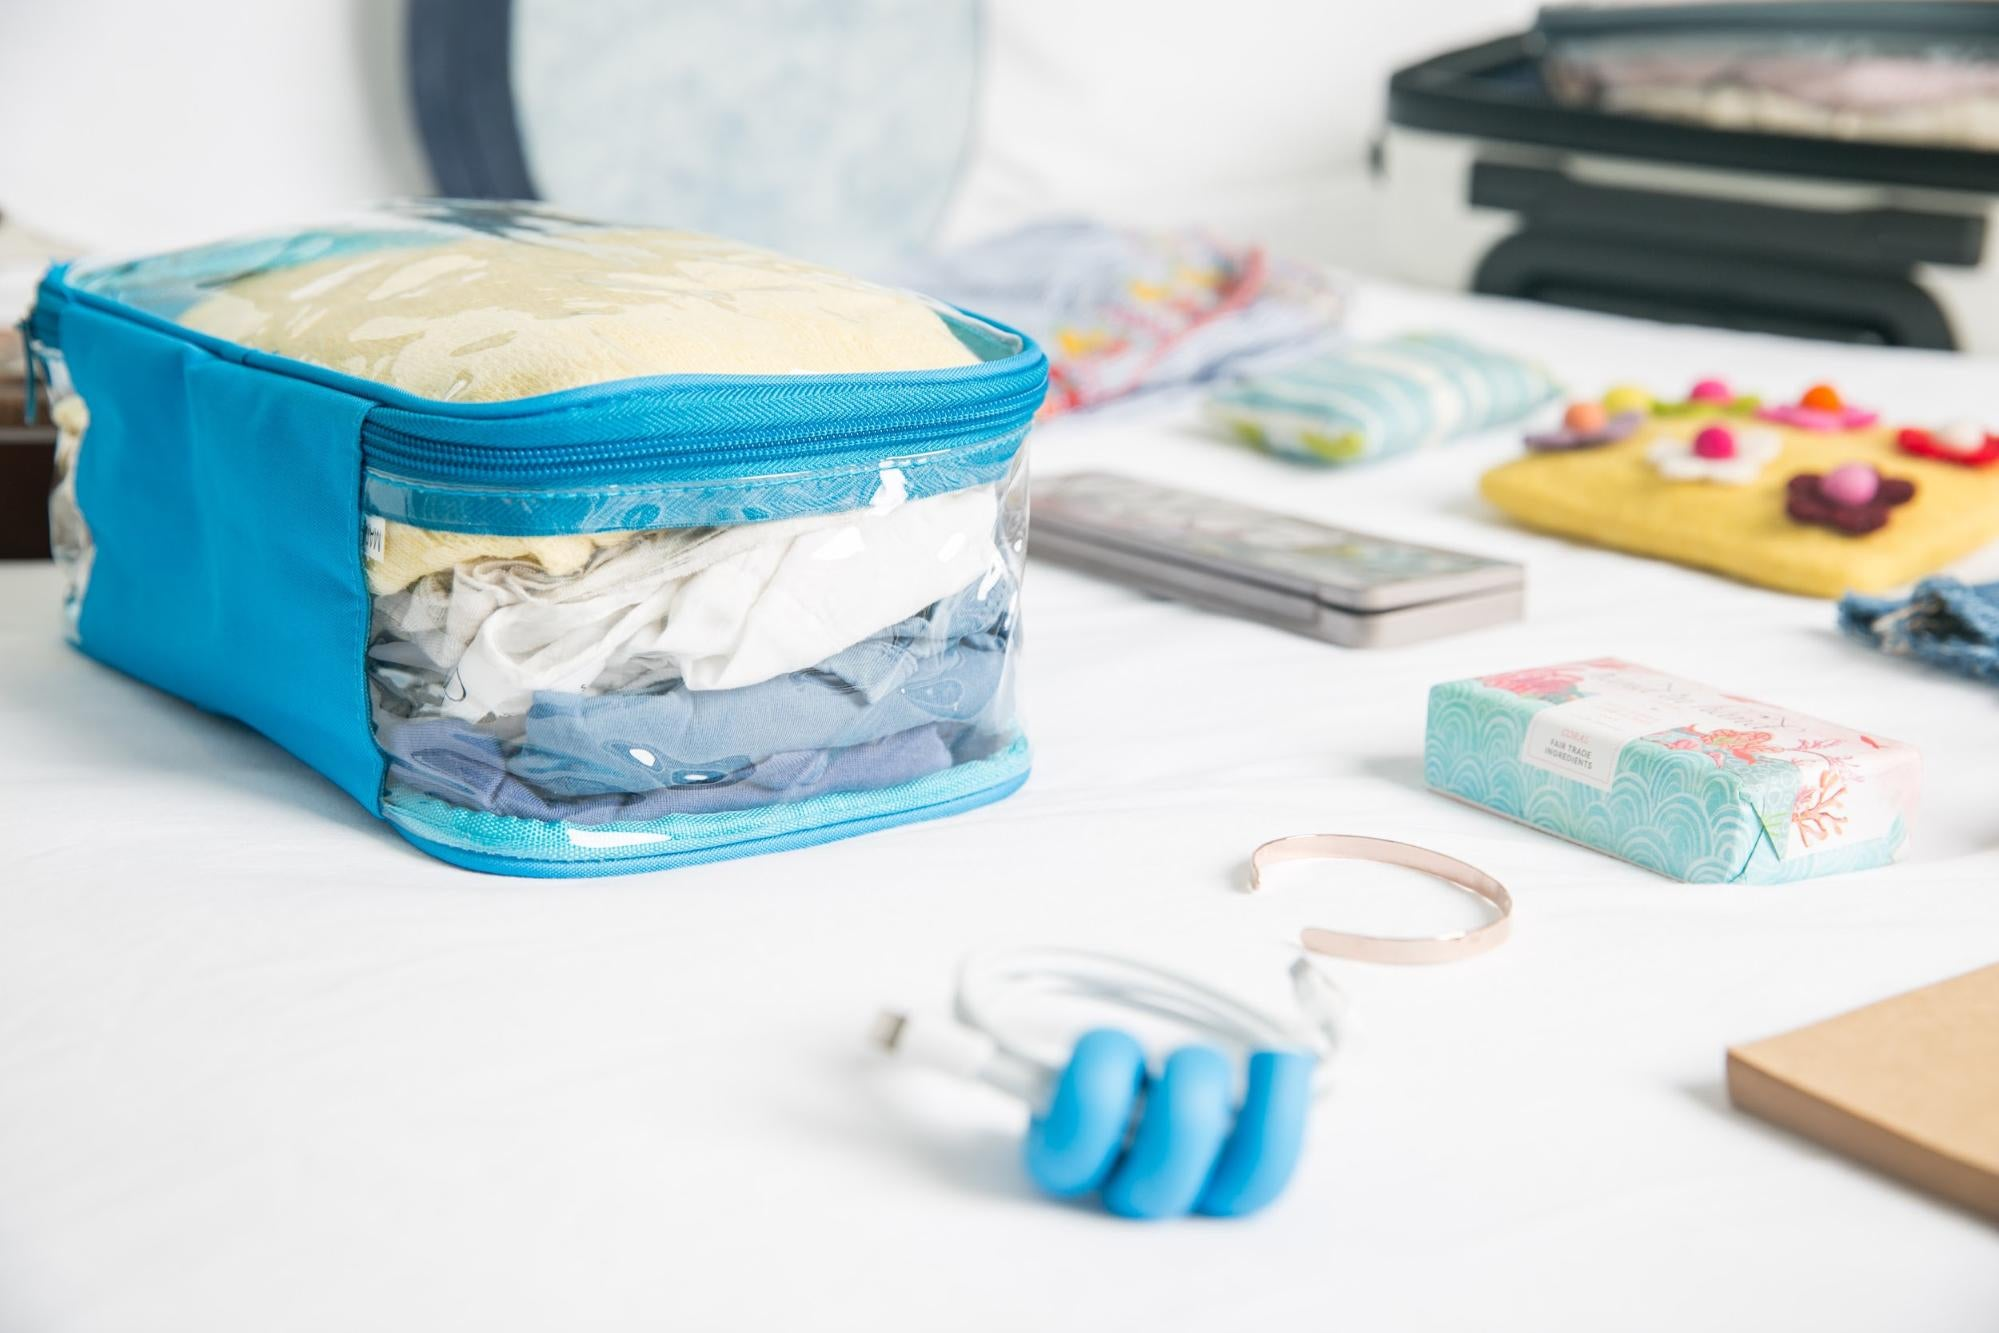 Blue EzPacking cube with essentials for Disneyland vacation trip